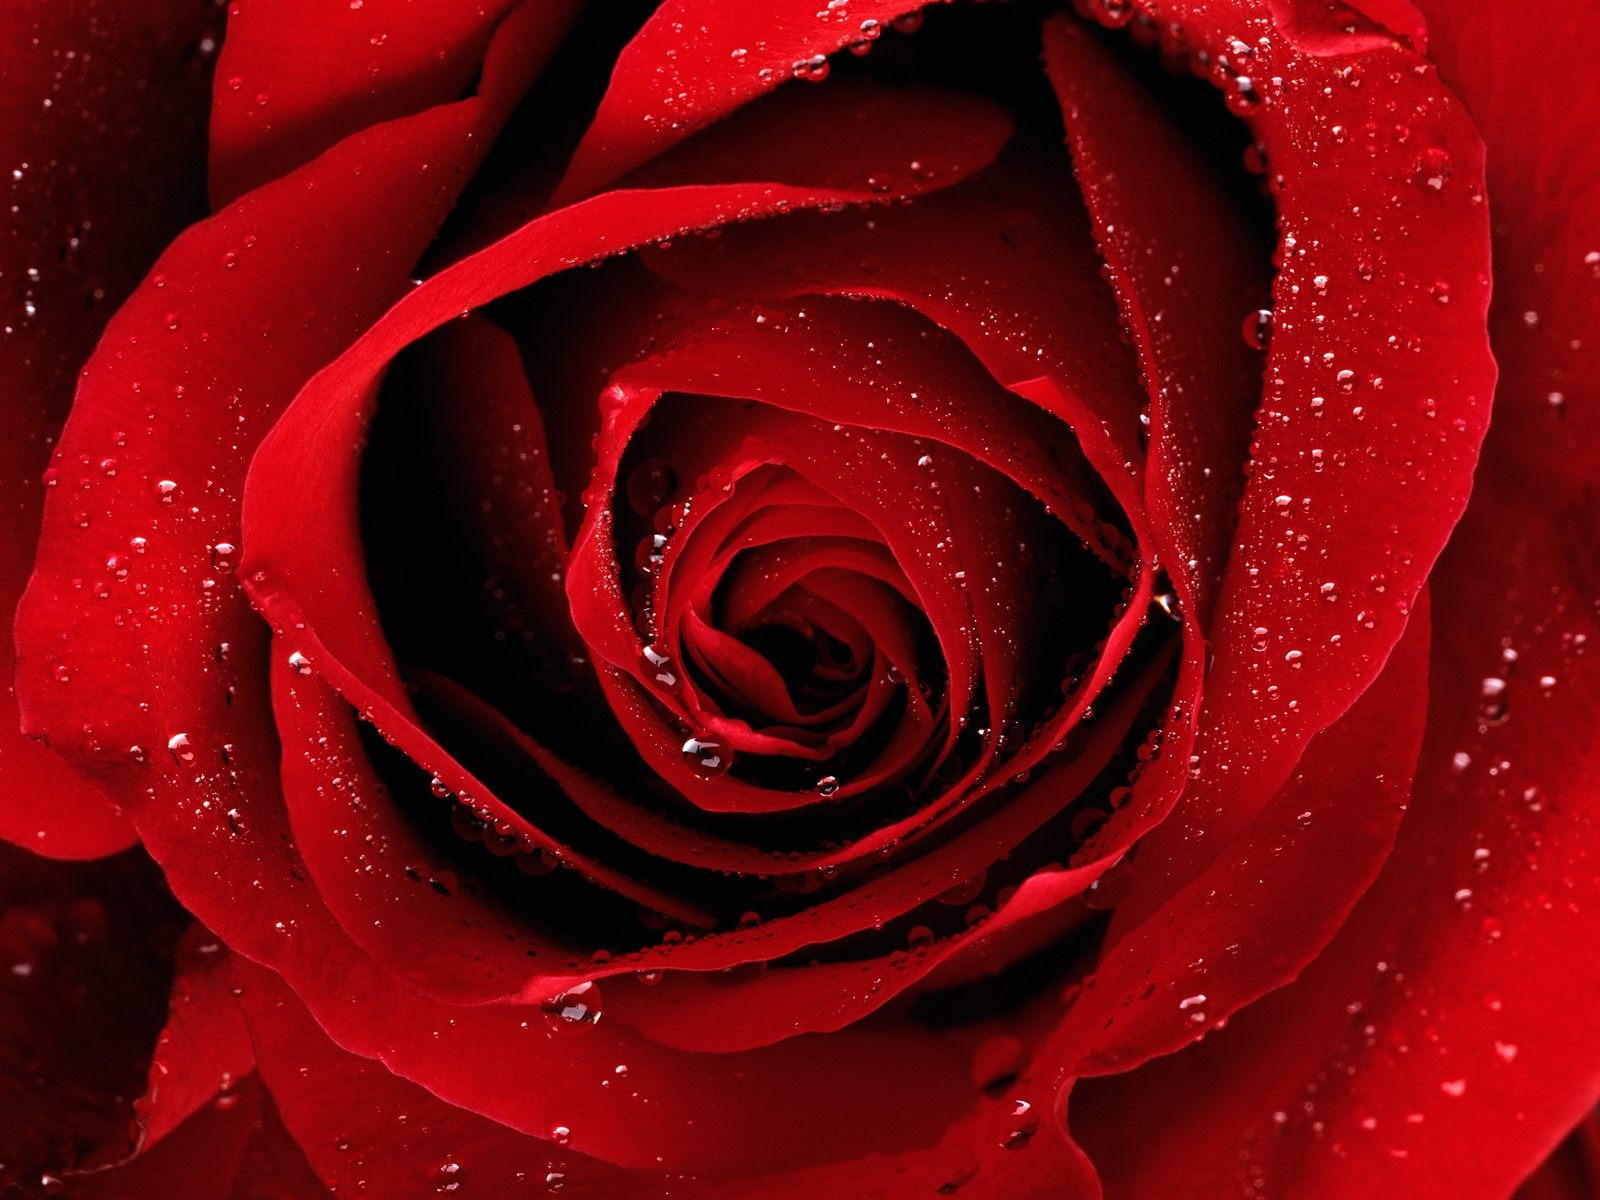 A Red Rose For You Wallpaper Flowers Nature Wallpapers In Jpg Format